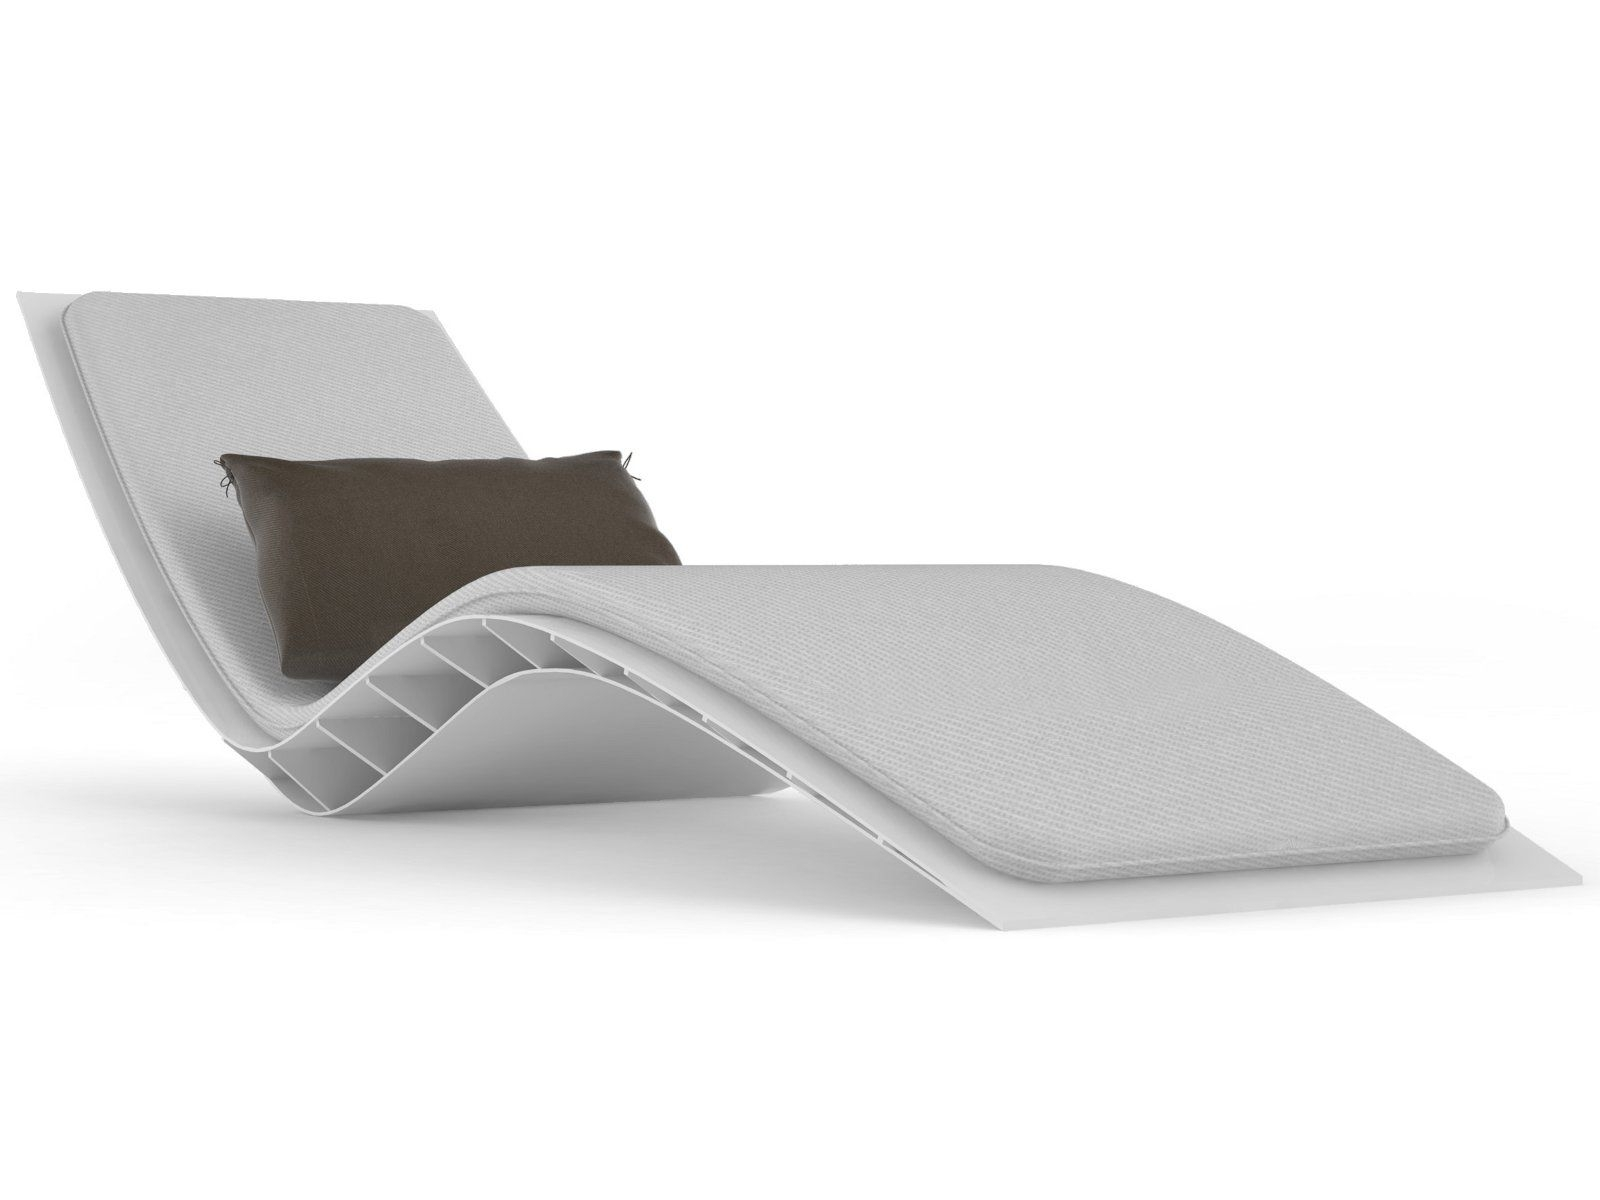 Awesome Modern Chaise Lounge Chair Cushions For Relaxing (View 7 of 15)